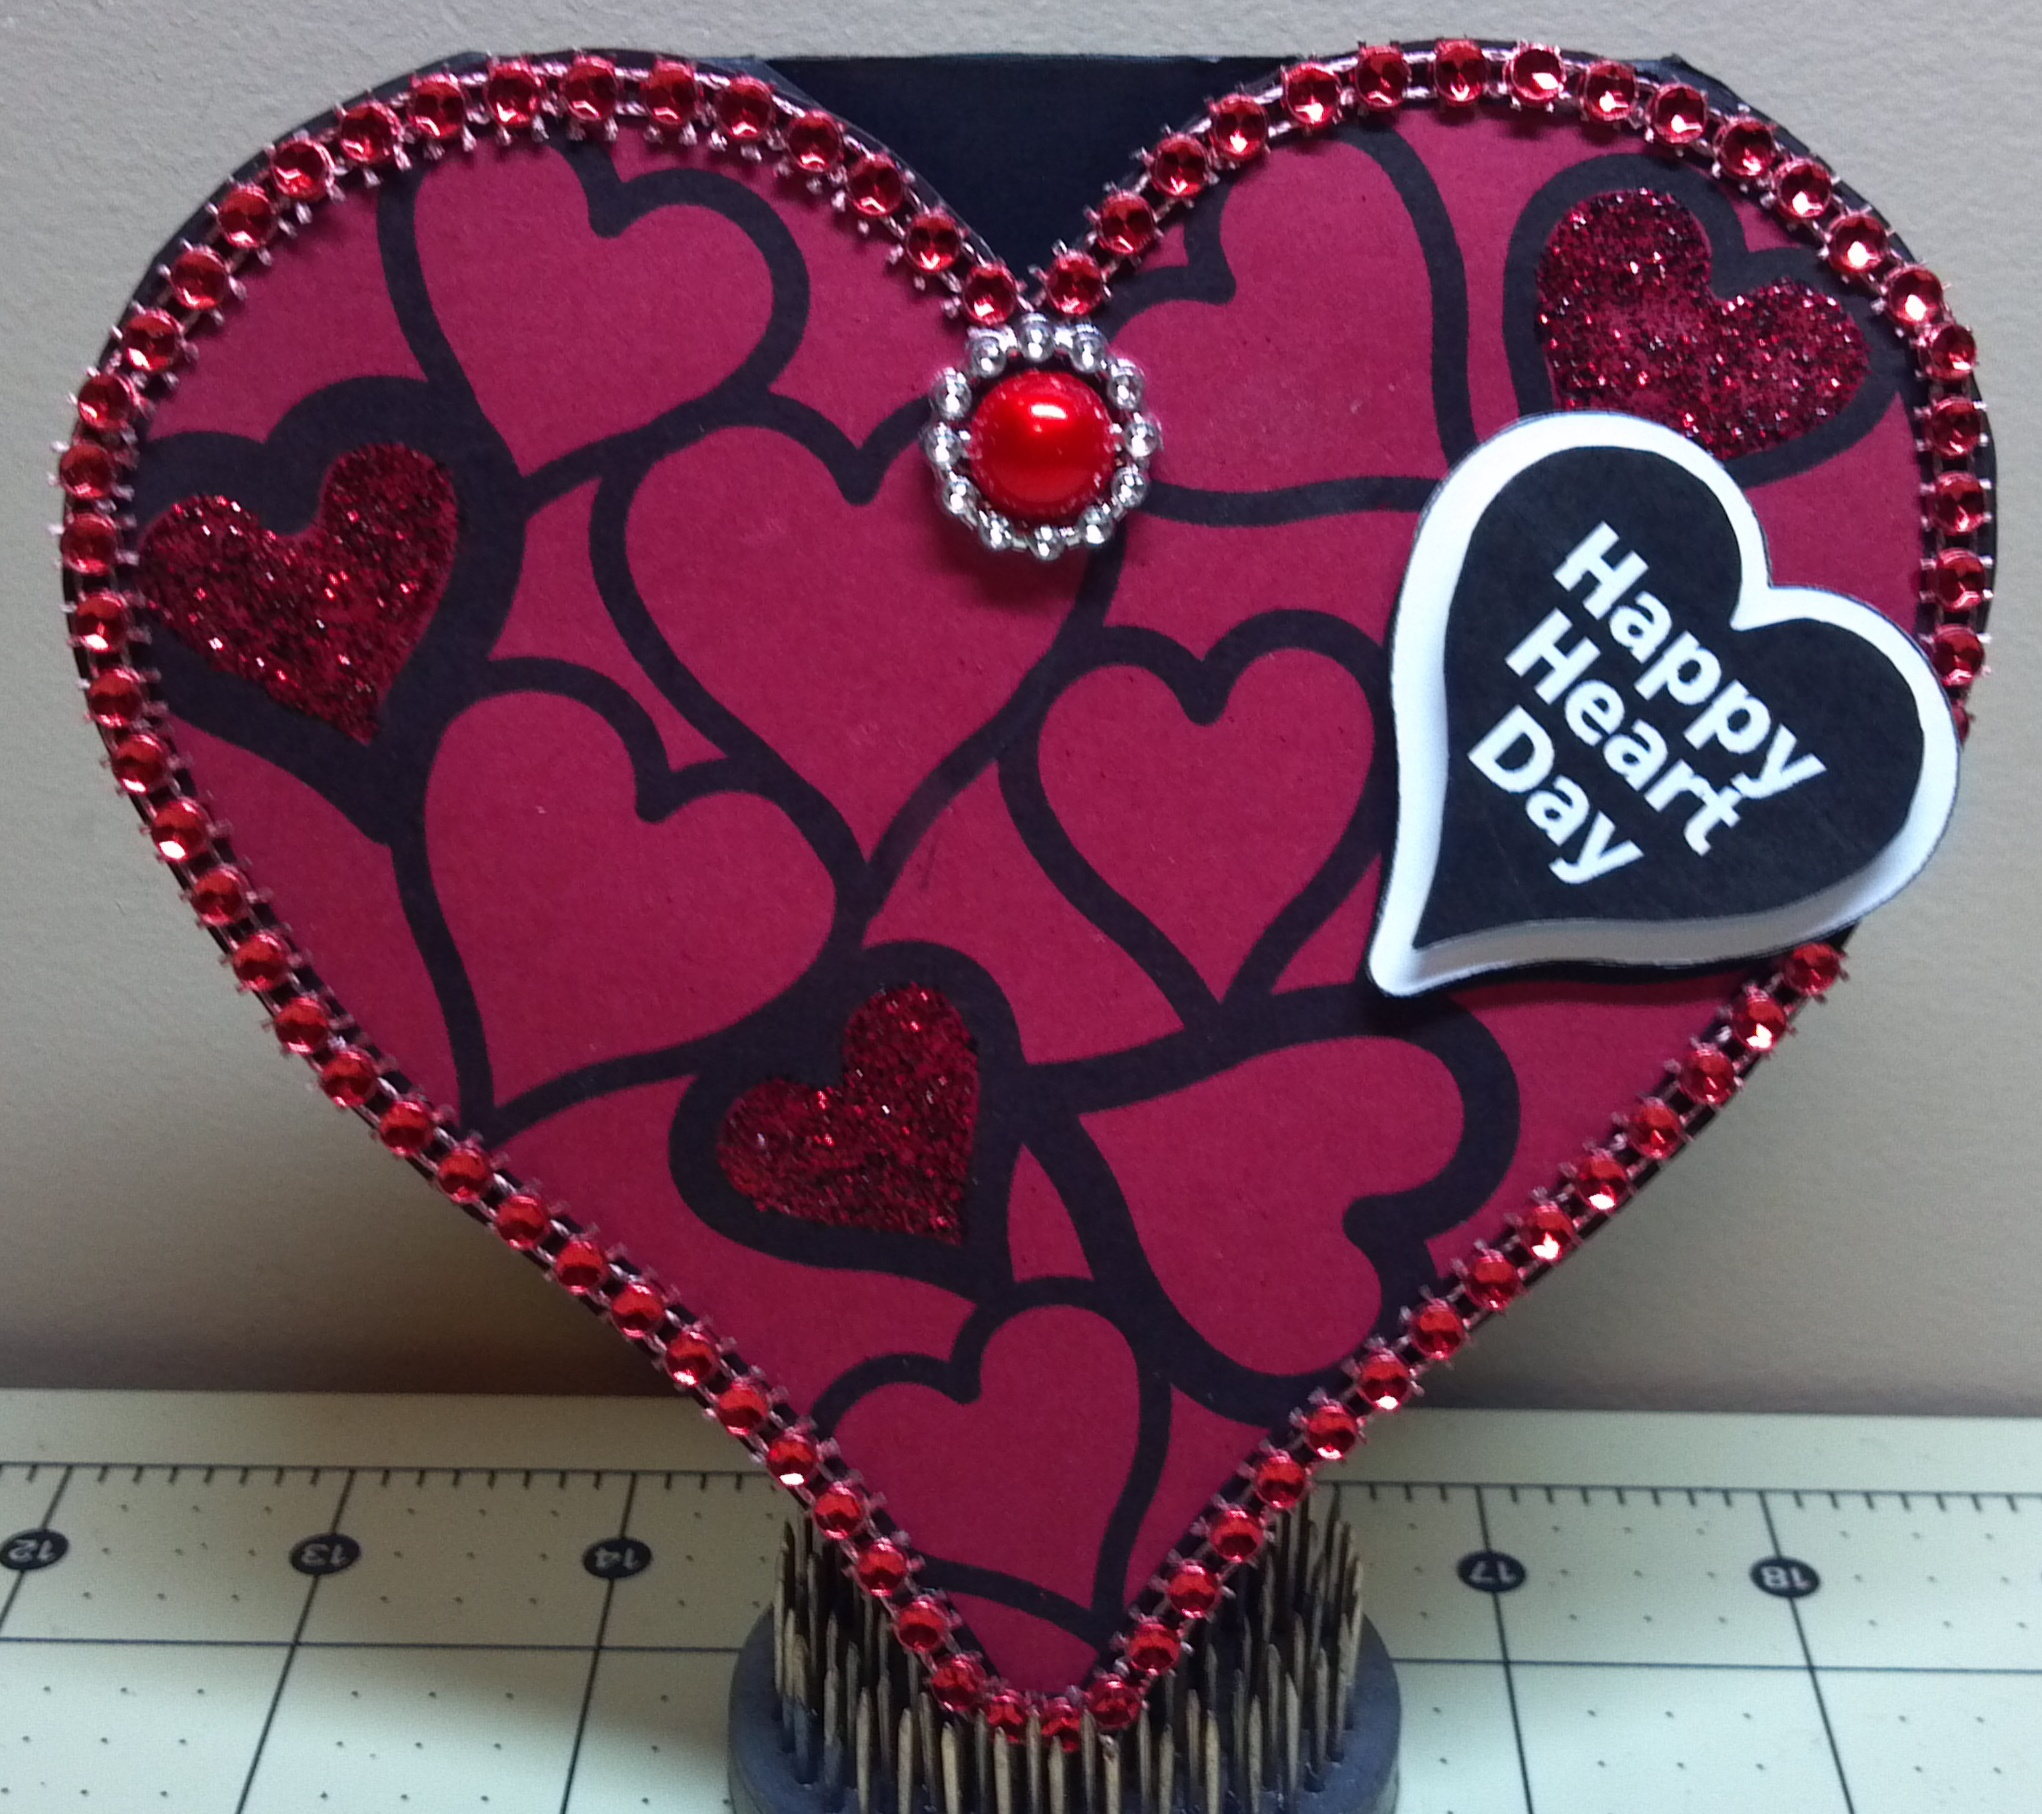 7b1c456cb7c Heart Lace Shaped Card - The Cutting Cafe Design Team Project